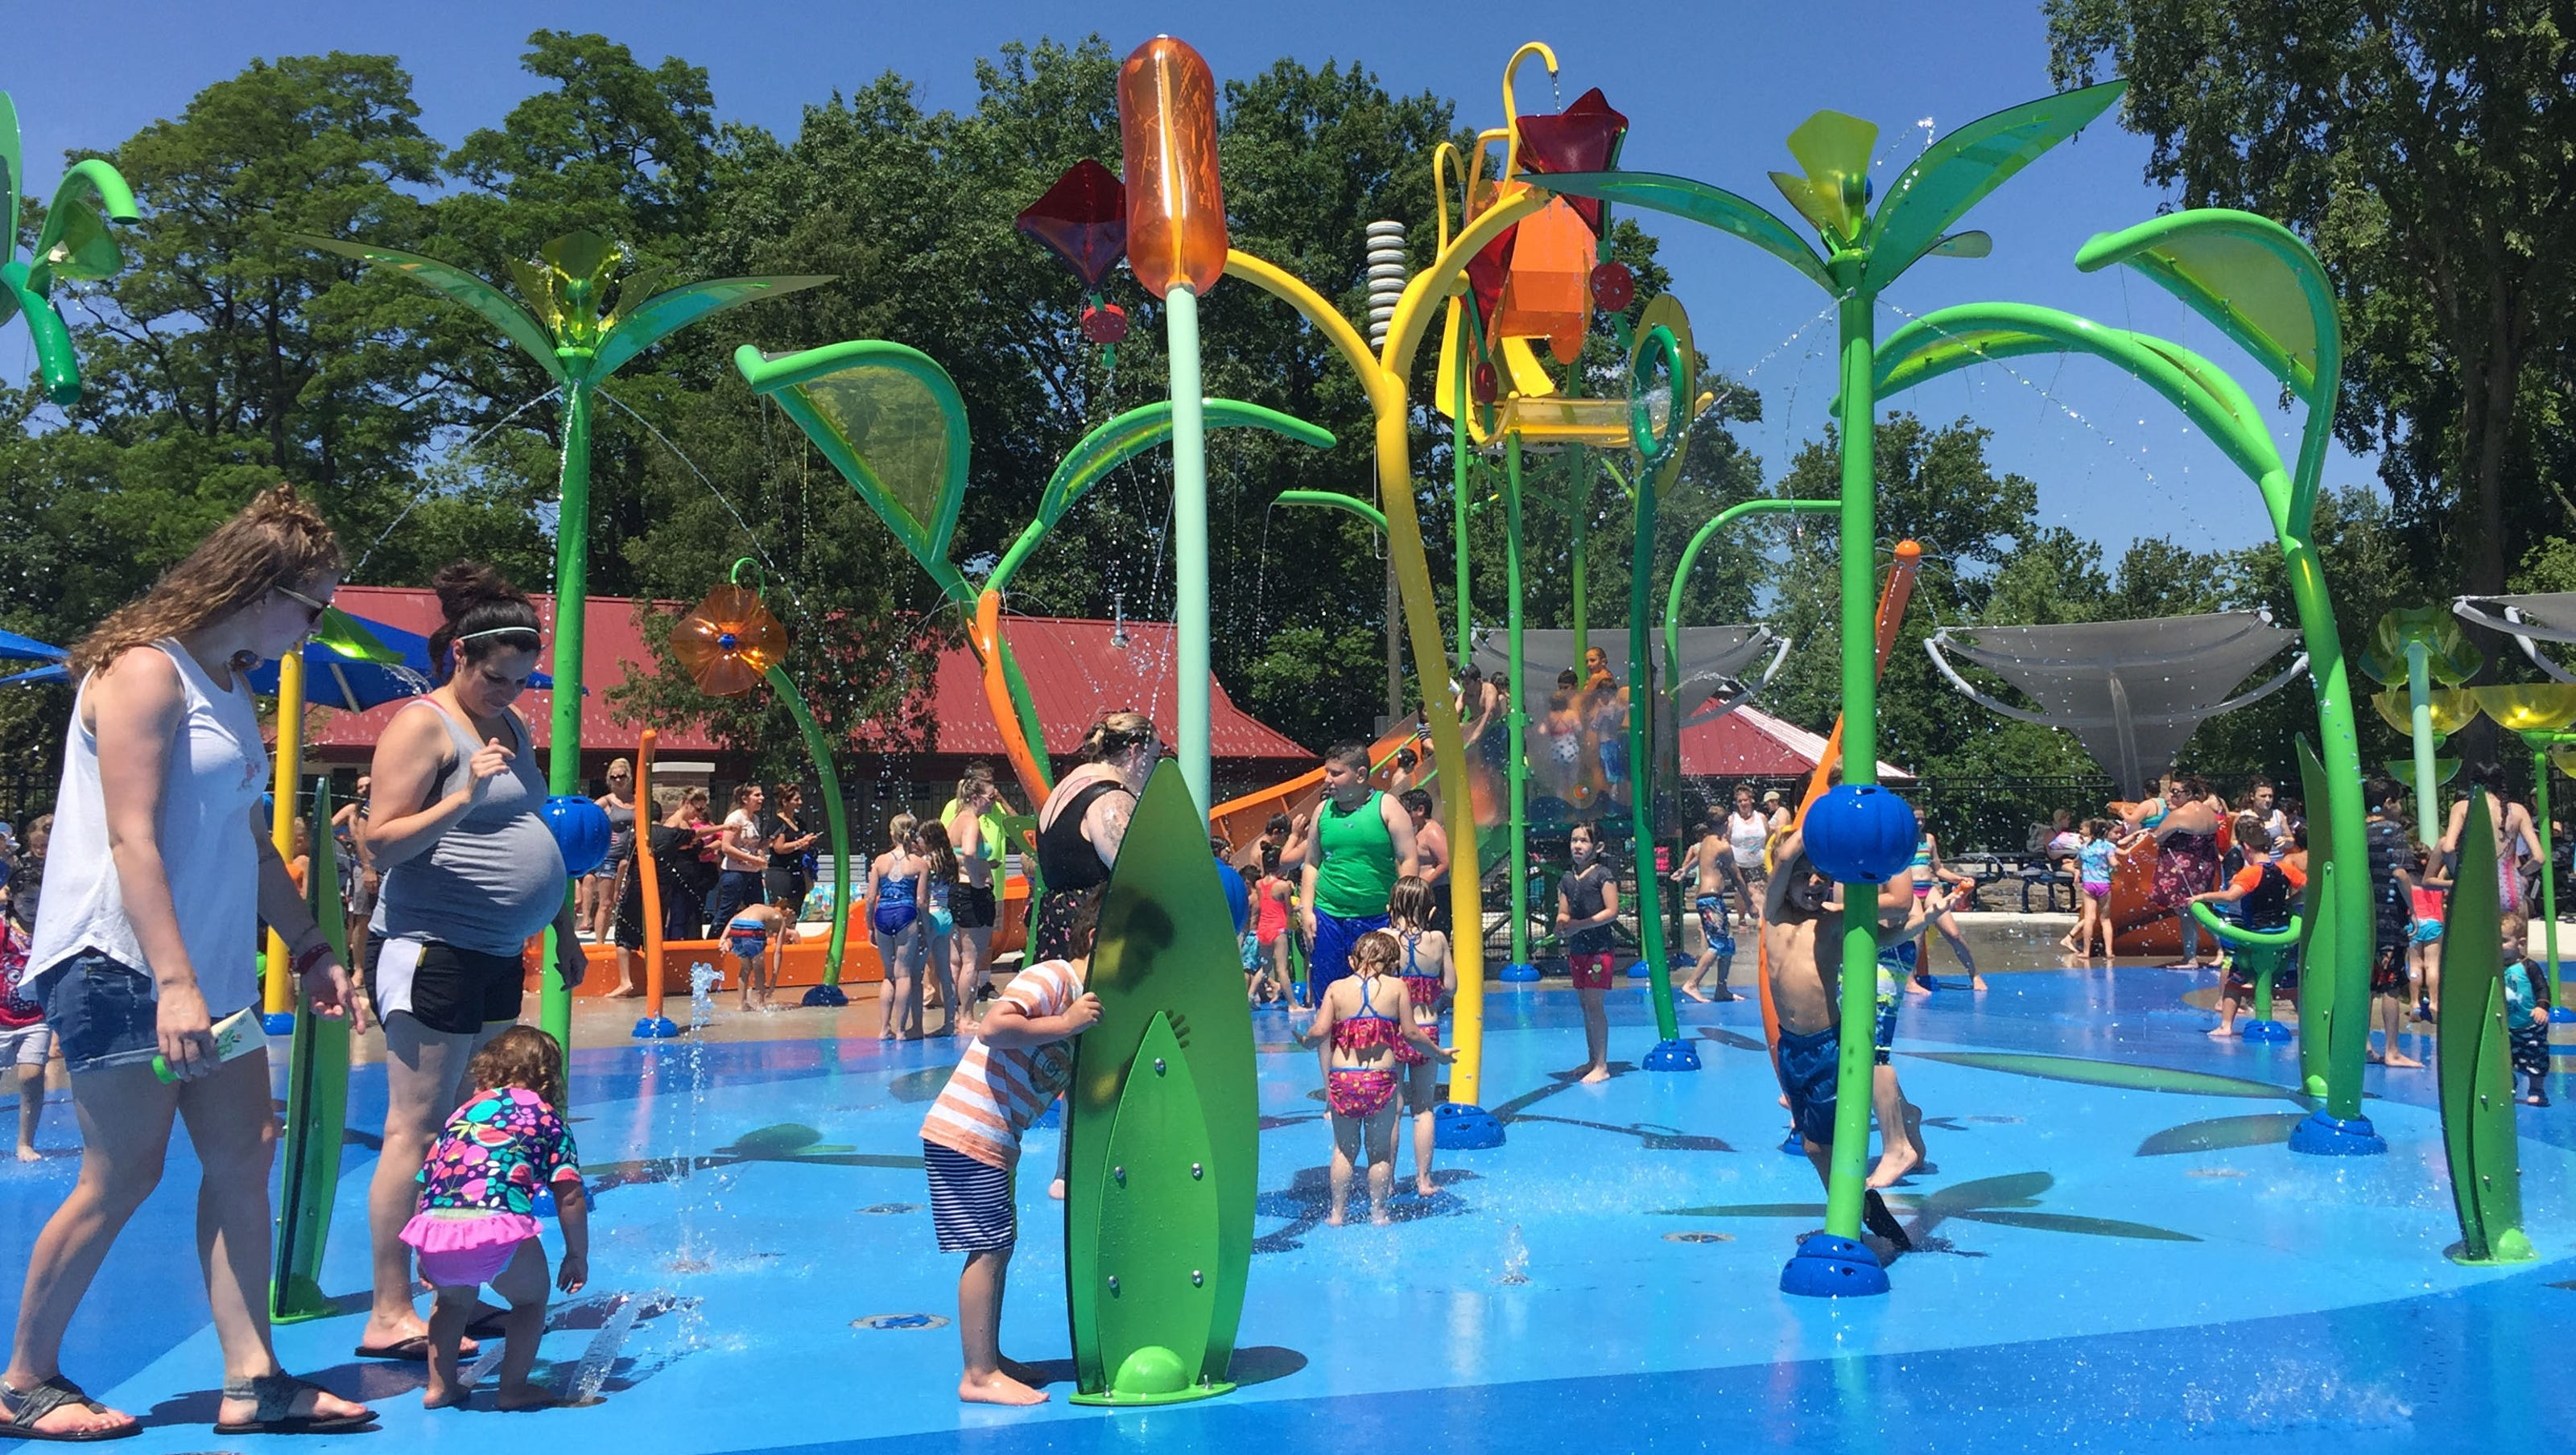 New splash pad in Sterling Heights a cool park upgrade